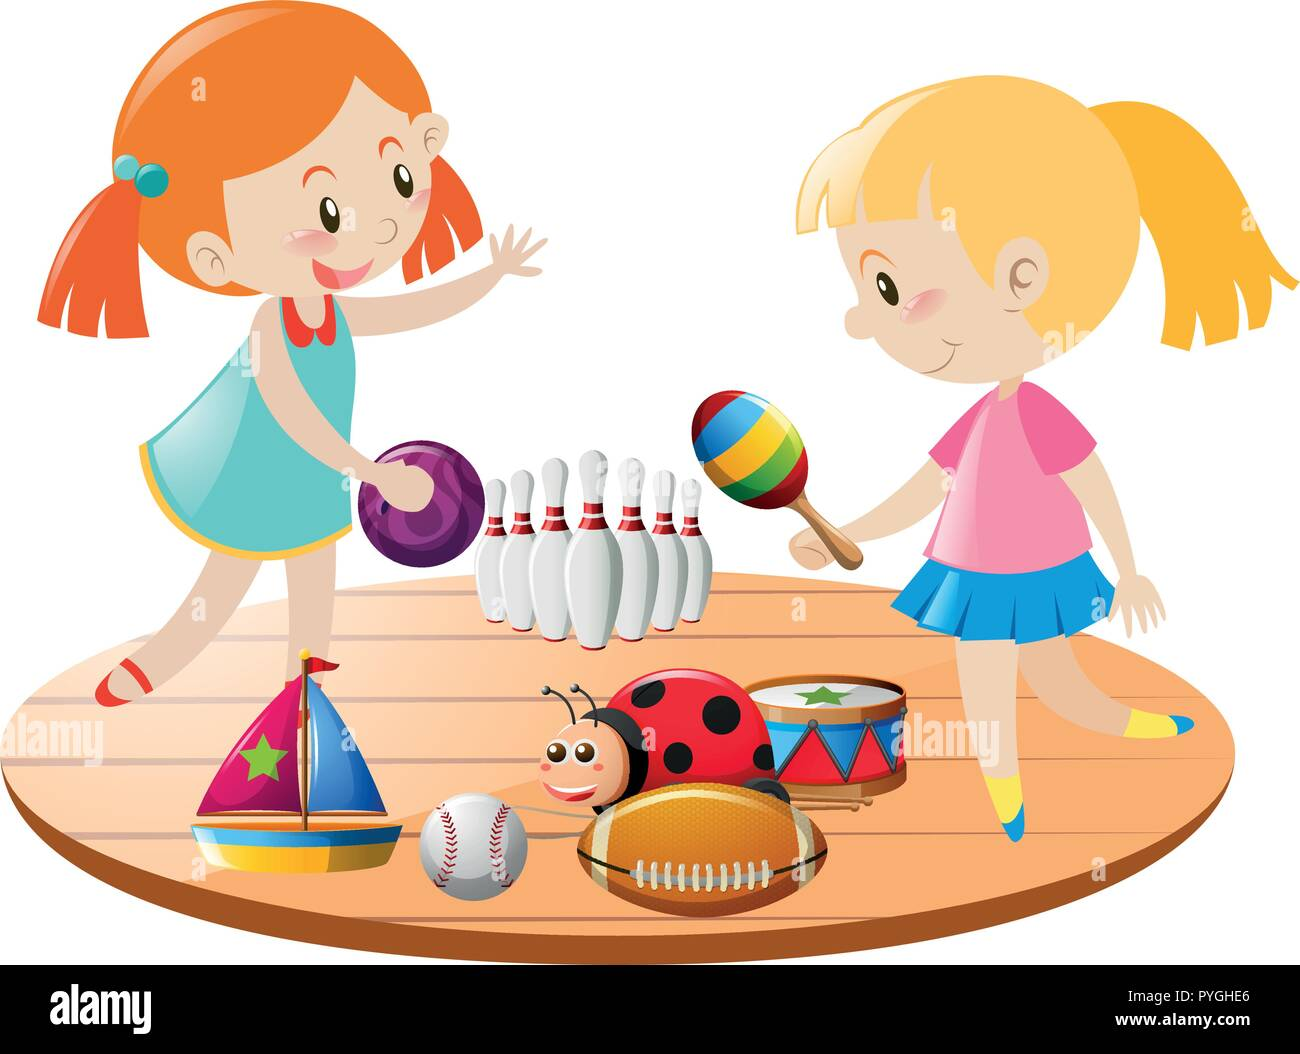 Two Girls Playing With Toys Illustration Stock Vector Art